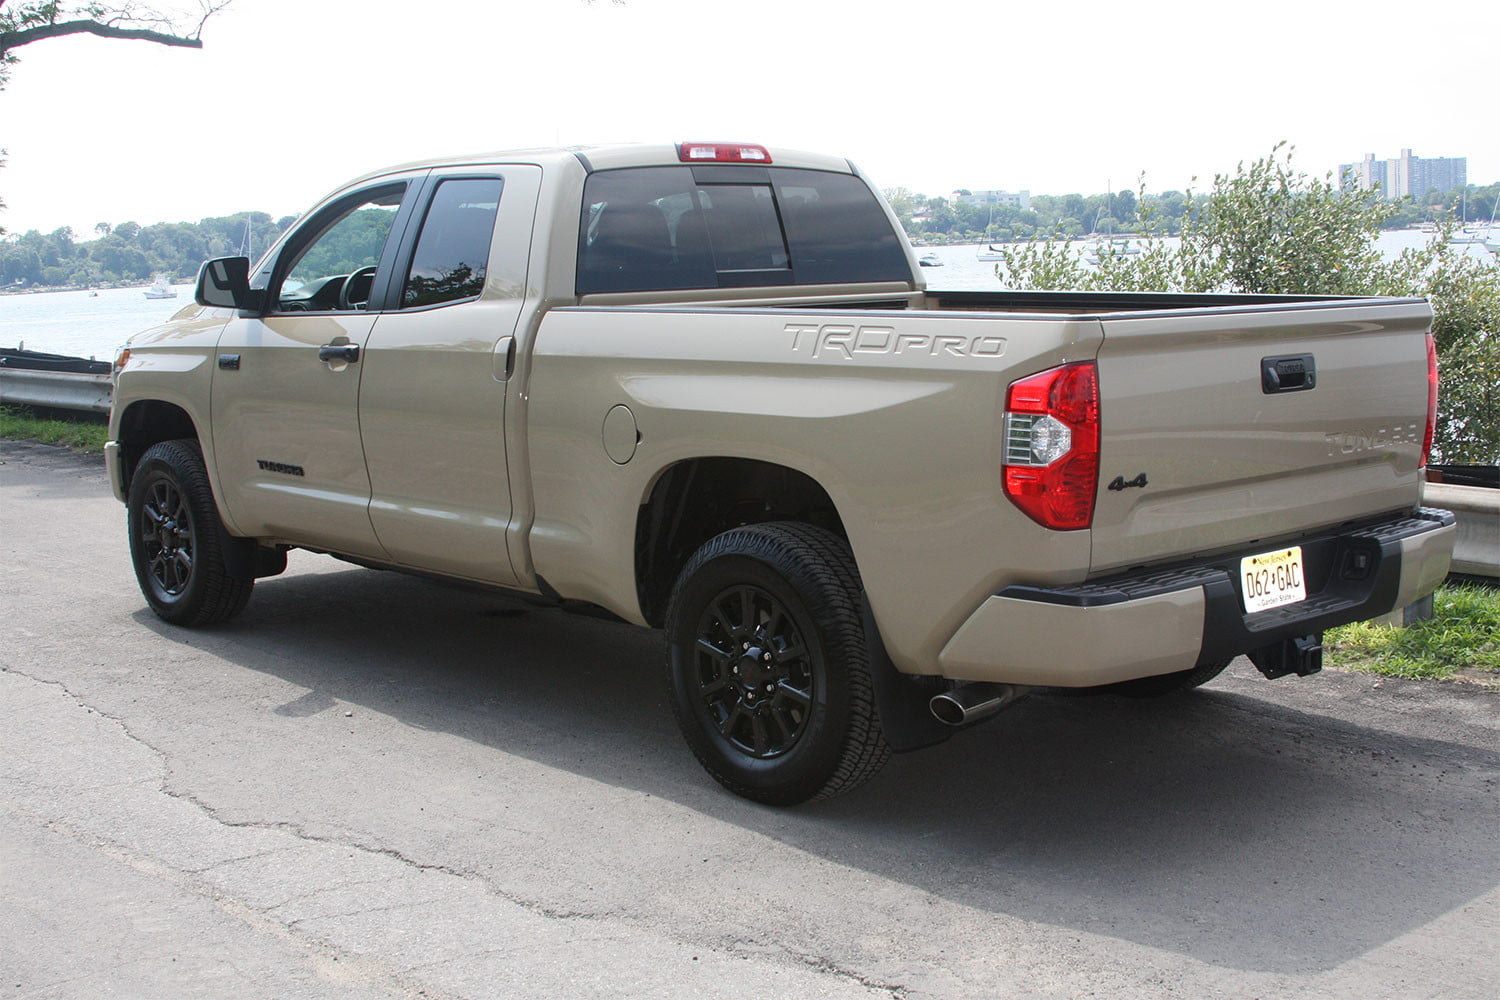 tundra edition toyota expert test platinum review of drive crewmax